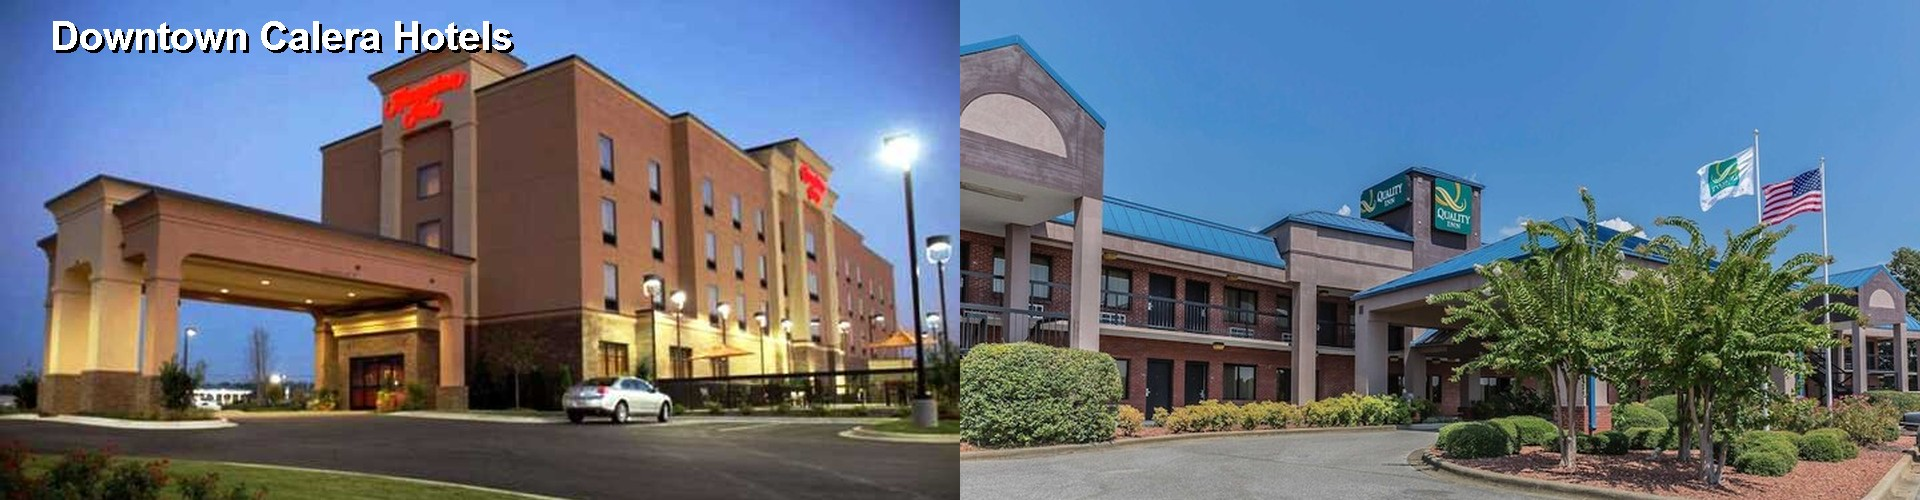 5 Best Hotels near Downtown Calera